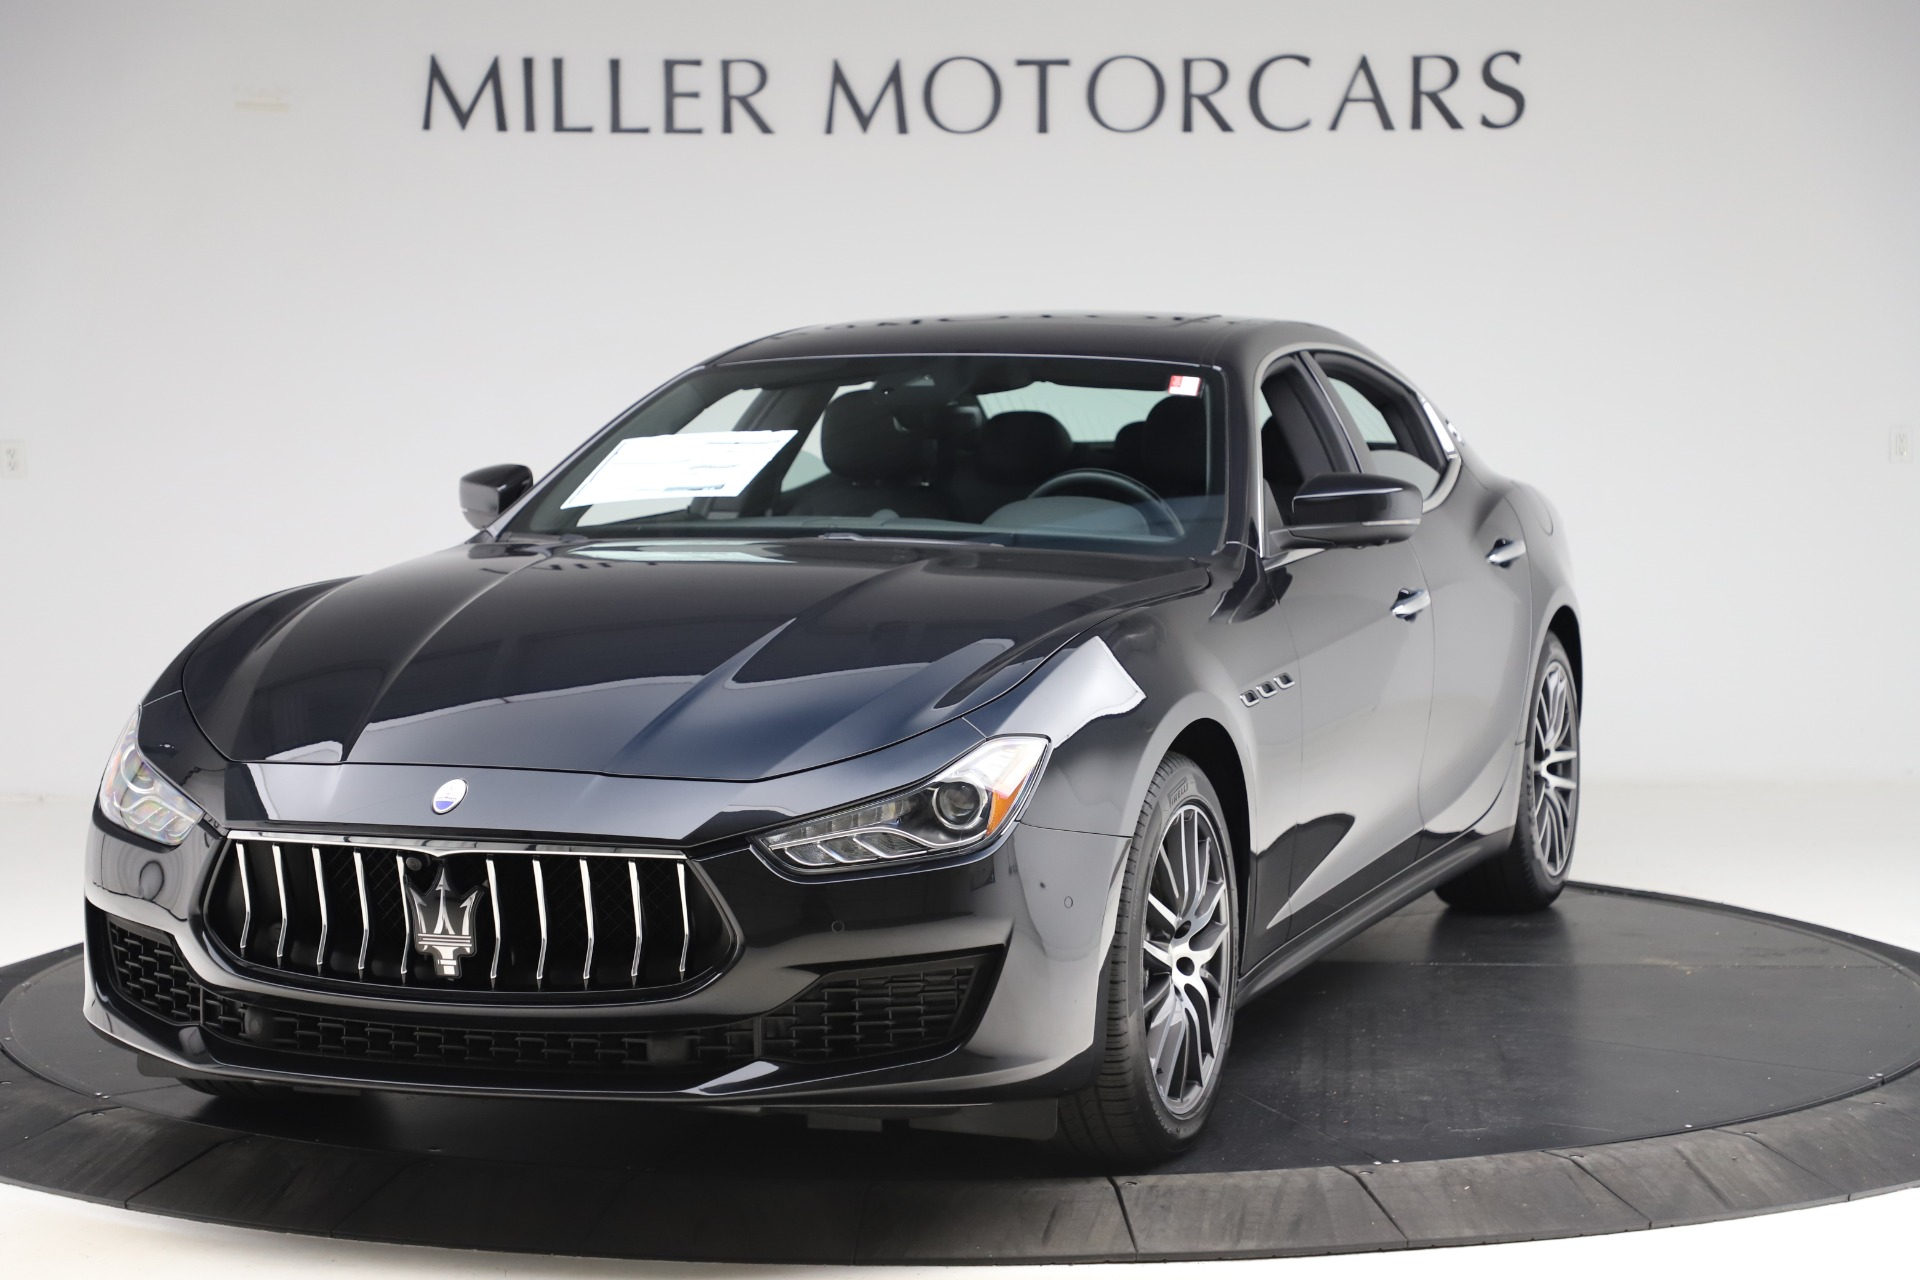 New 2019 Maserati Ghibli S Q4 for sale $91,165 at Pagani of Greenwich in Greenwich CT 06830 1